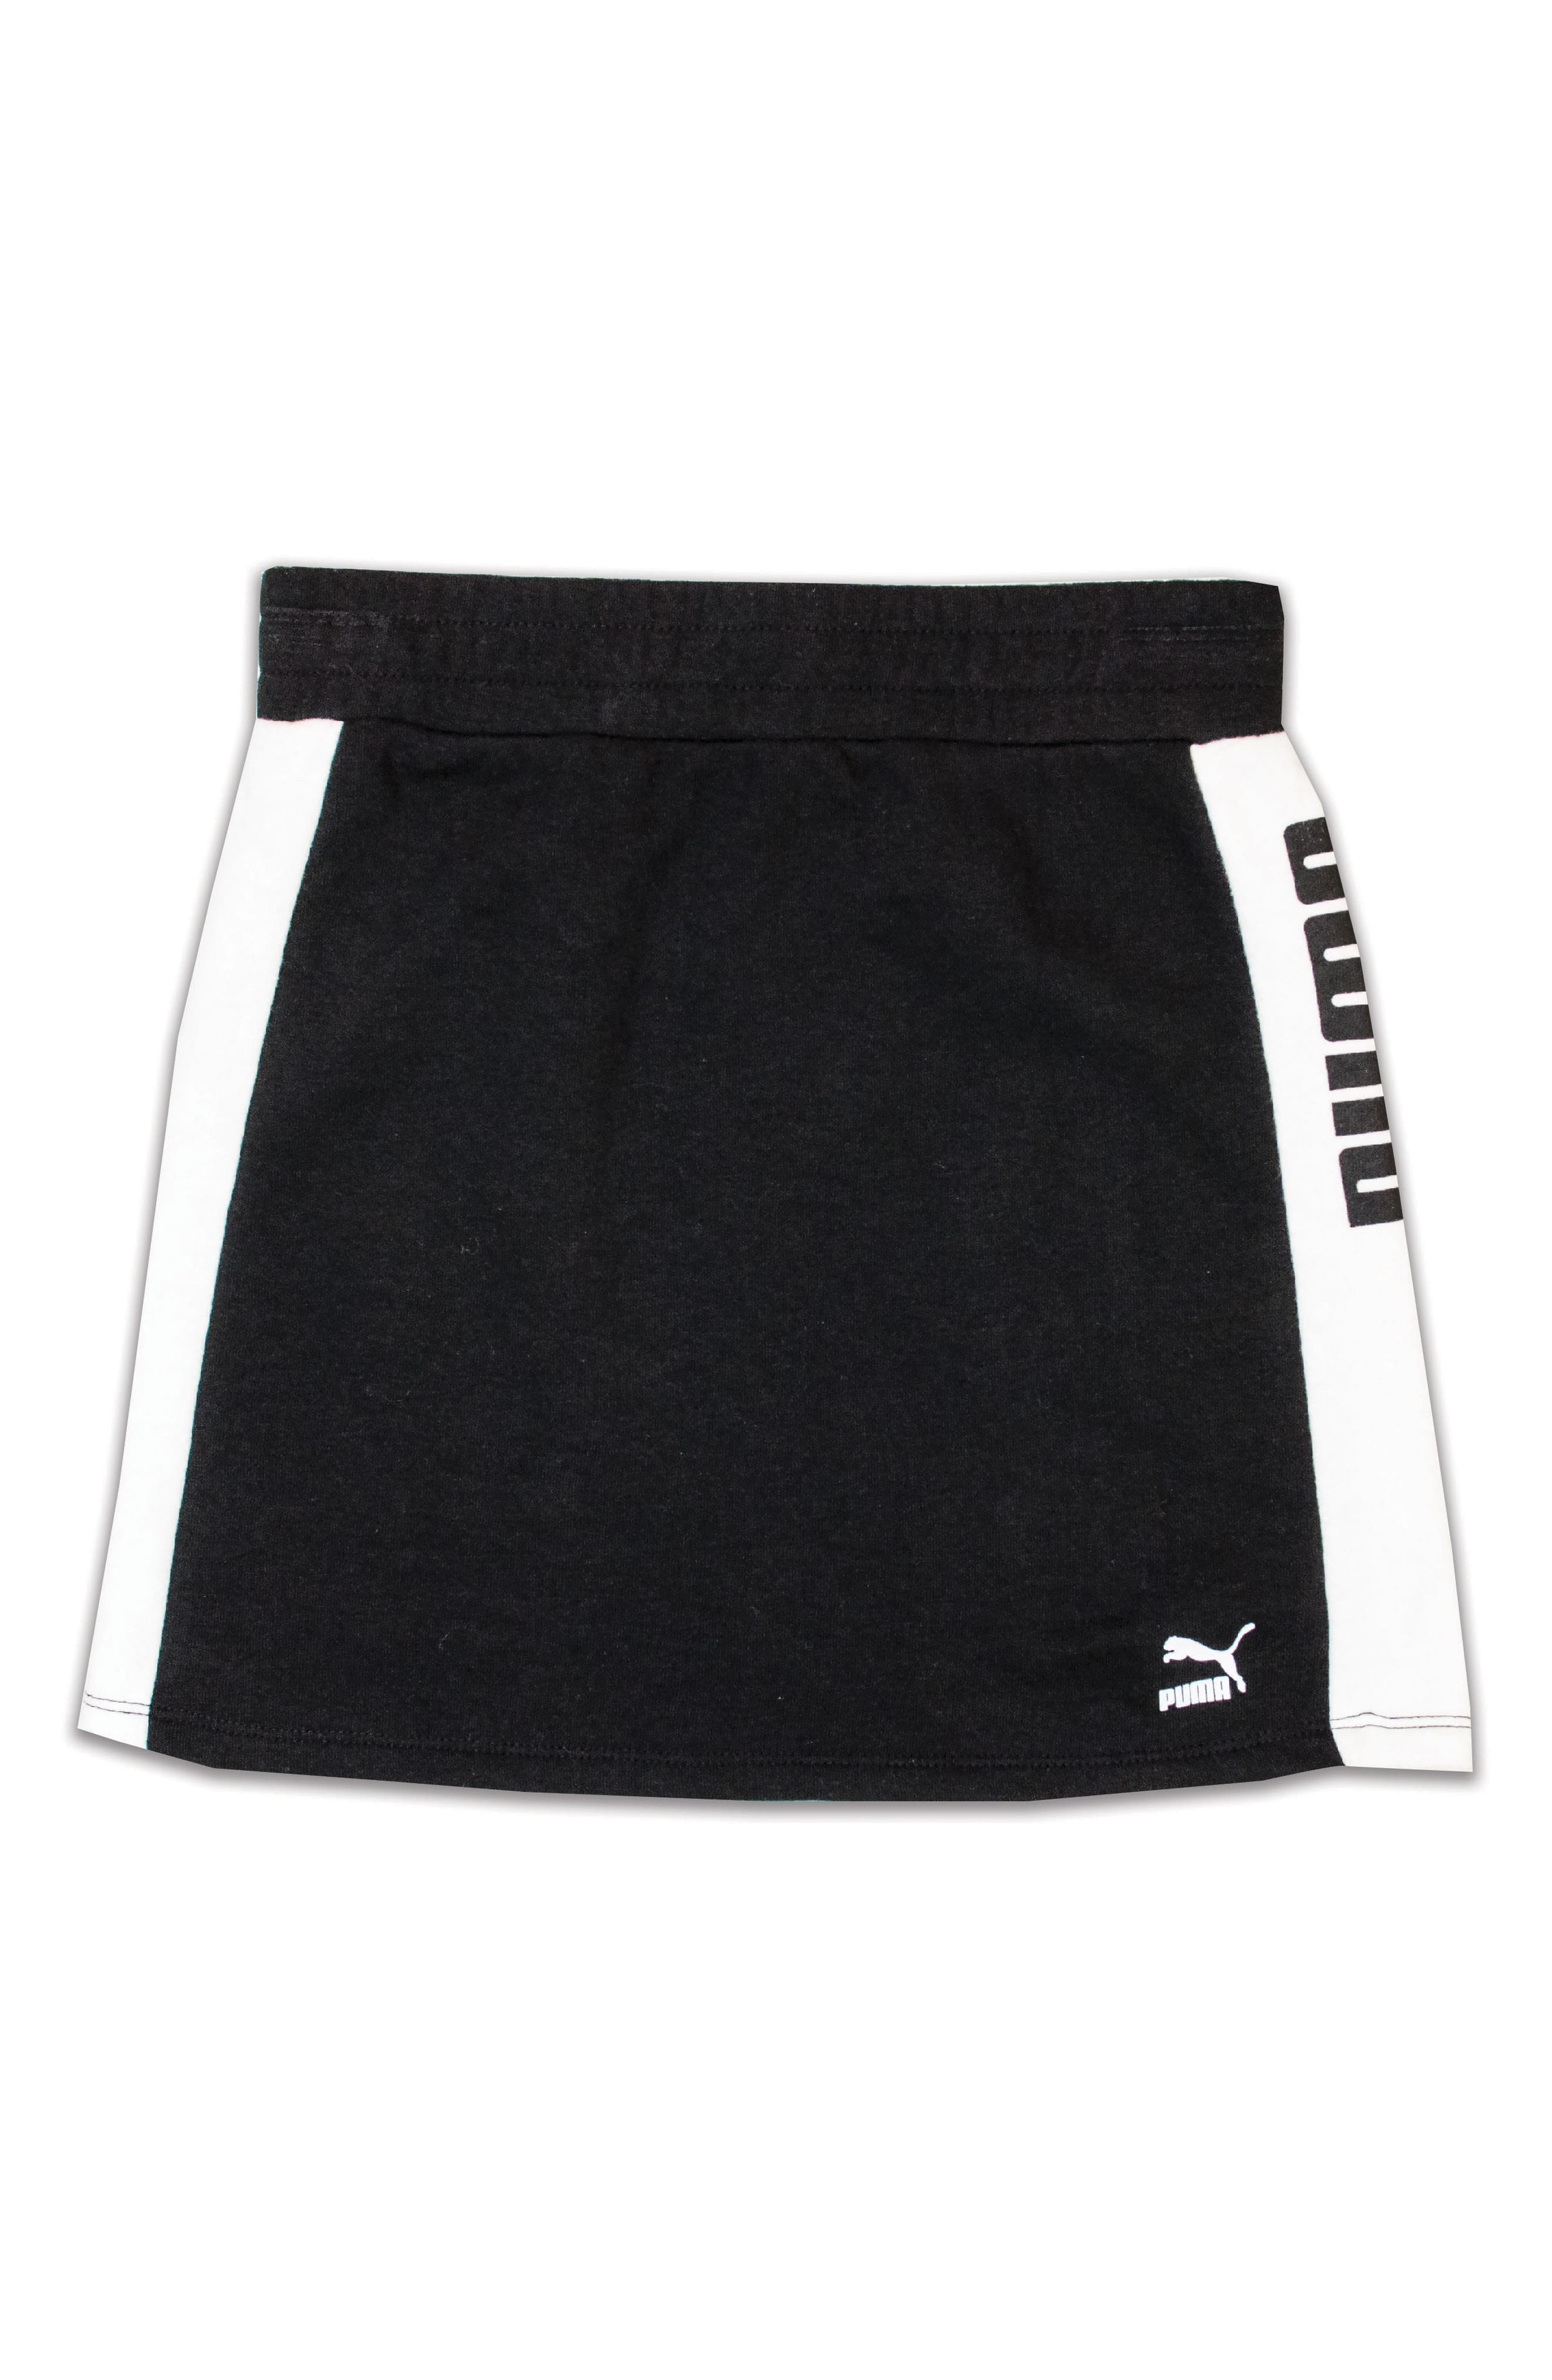 French Terry Skirt,                             Main thumbnail 1, color,                             Puma Black